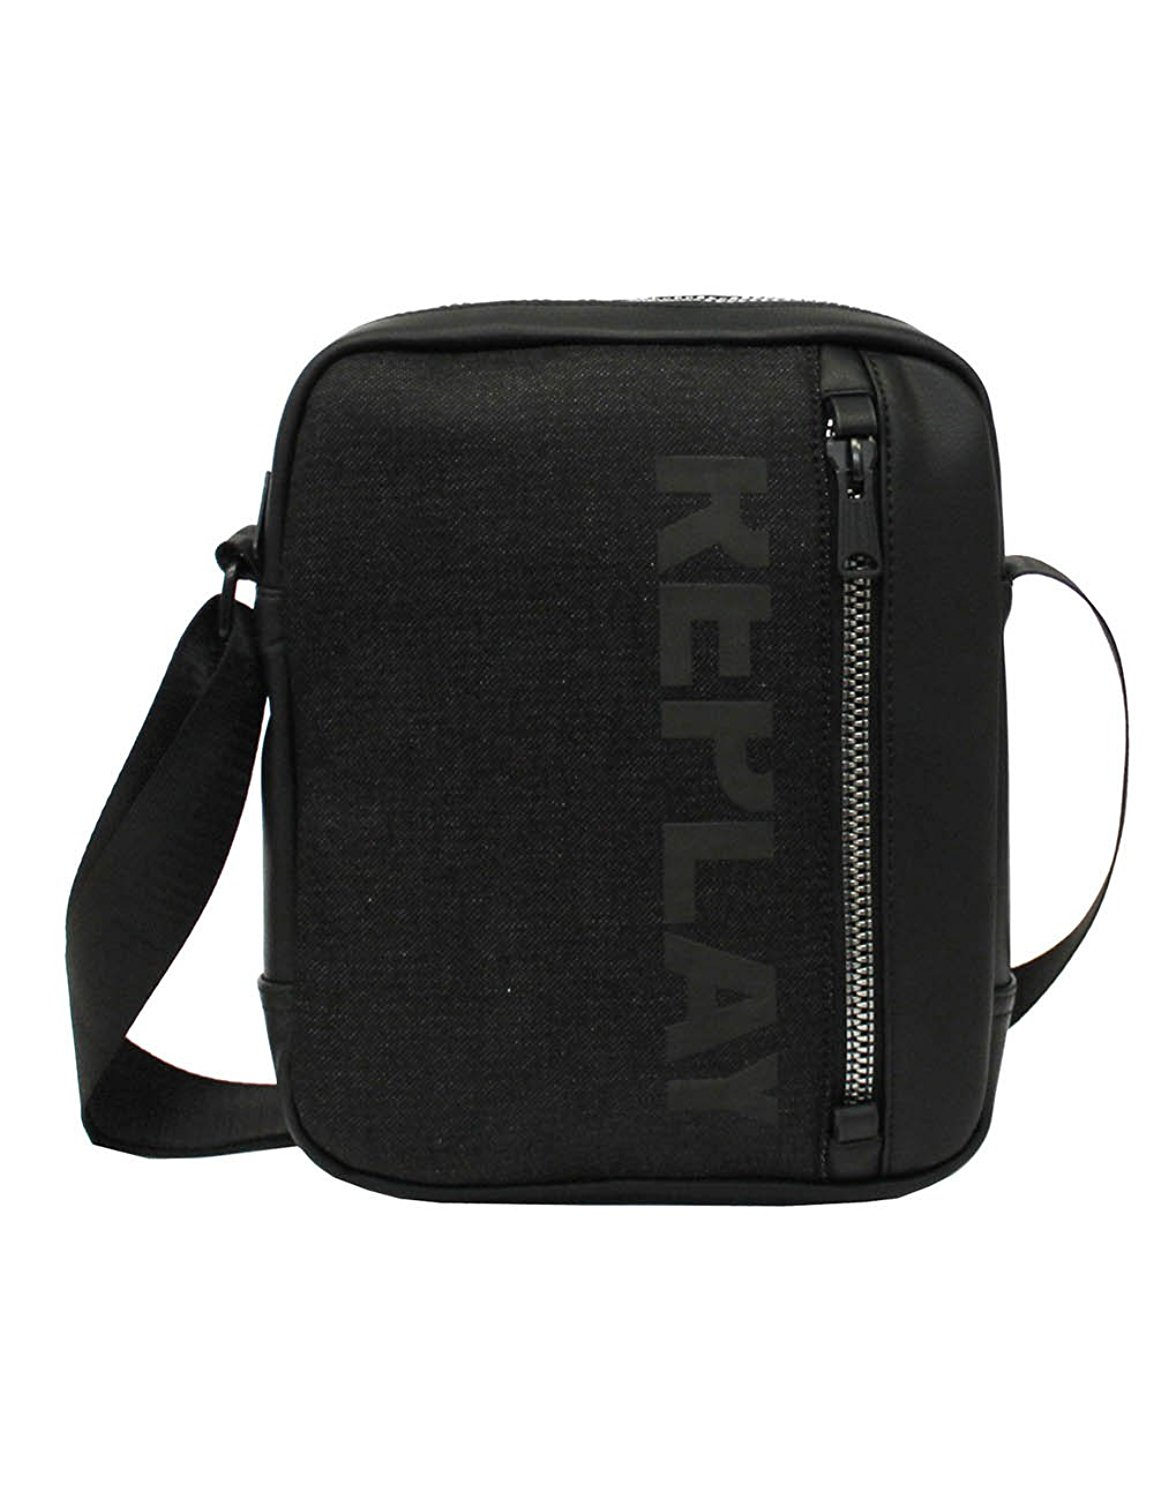 e40627a741ef Get Quotations · Replay Men s Men s Black Denim Shoulder Bag 100% Cotton